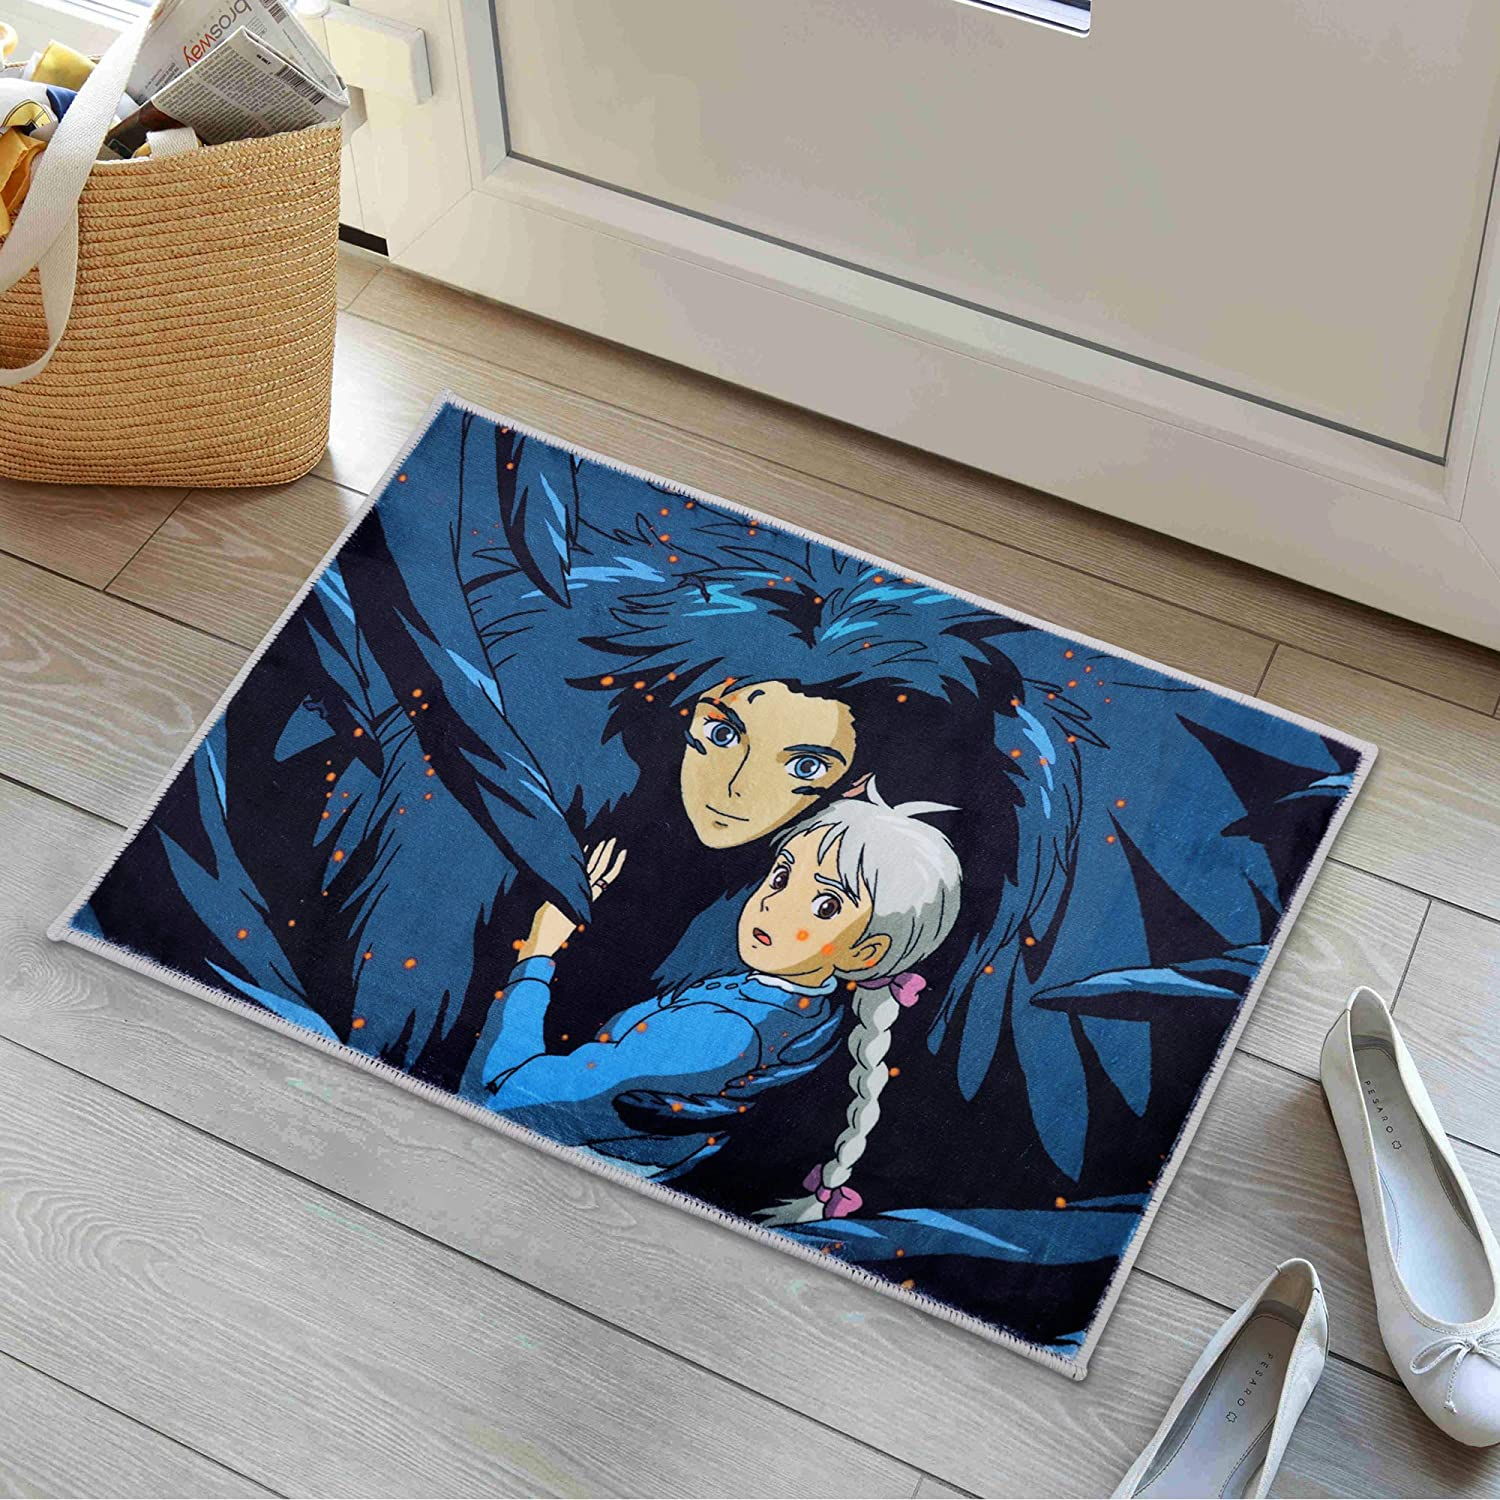 Howls Moving Castle Rug Anime Area Rugs for Boys Living Room Non-Slip Mats for Bathroom 16x24 Inches